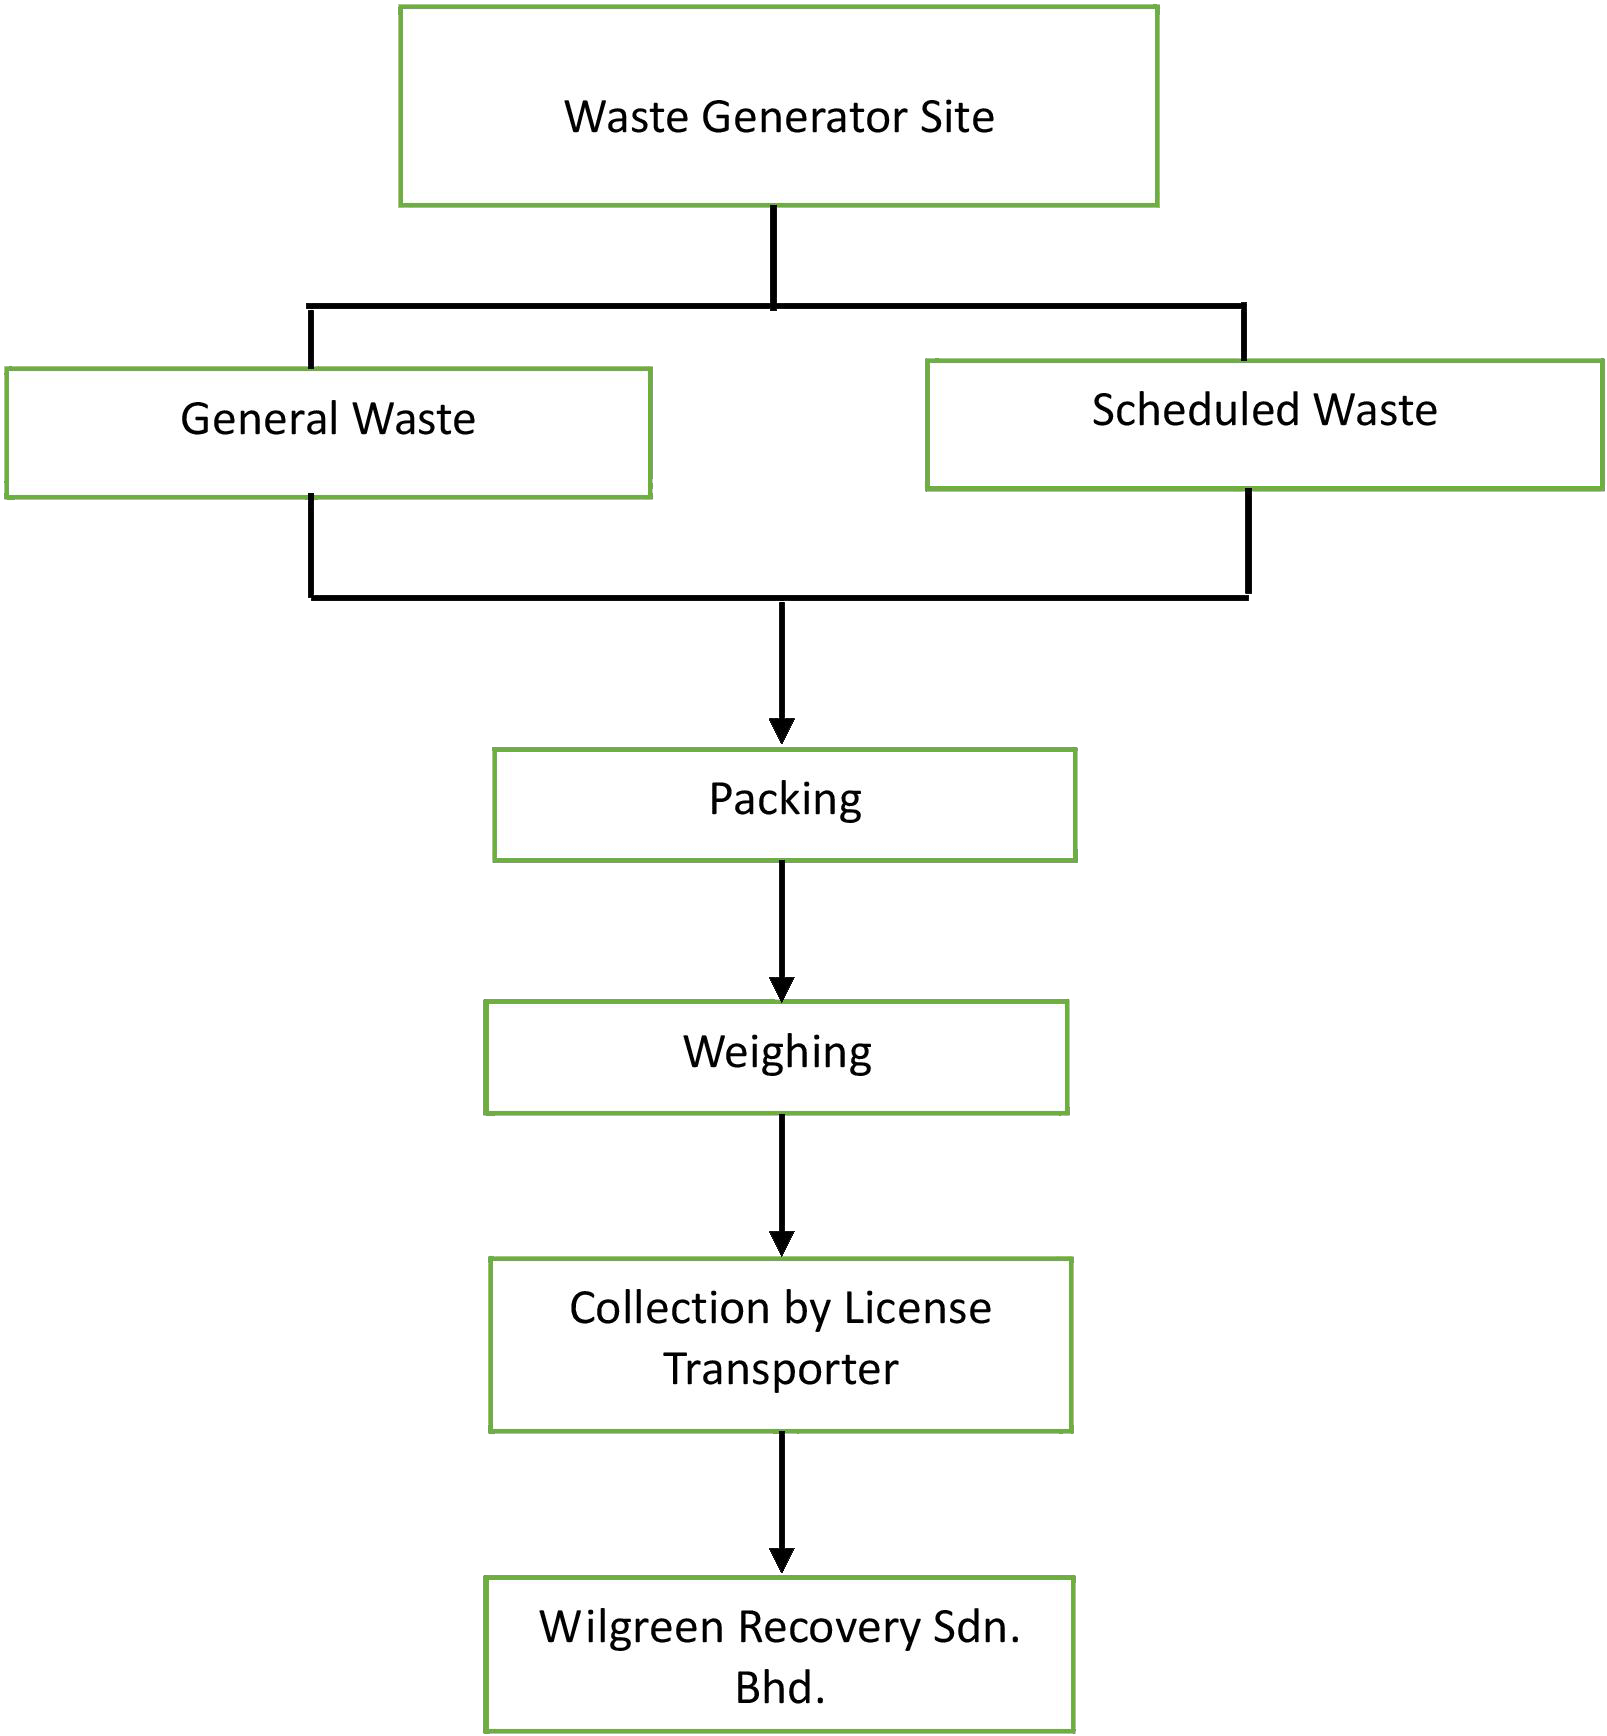 Scrap Collection at Customer Premises Flowchart